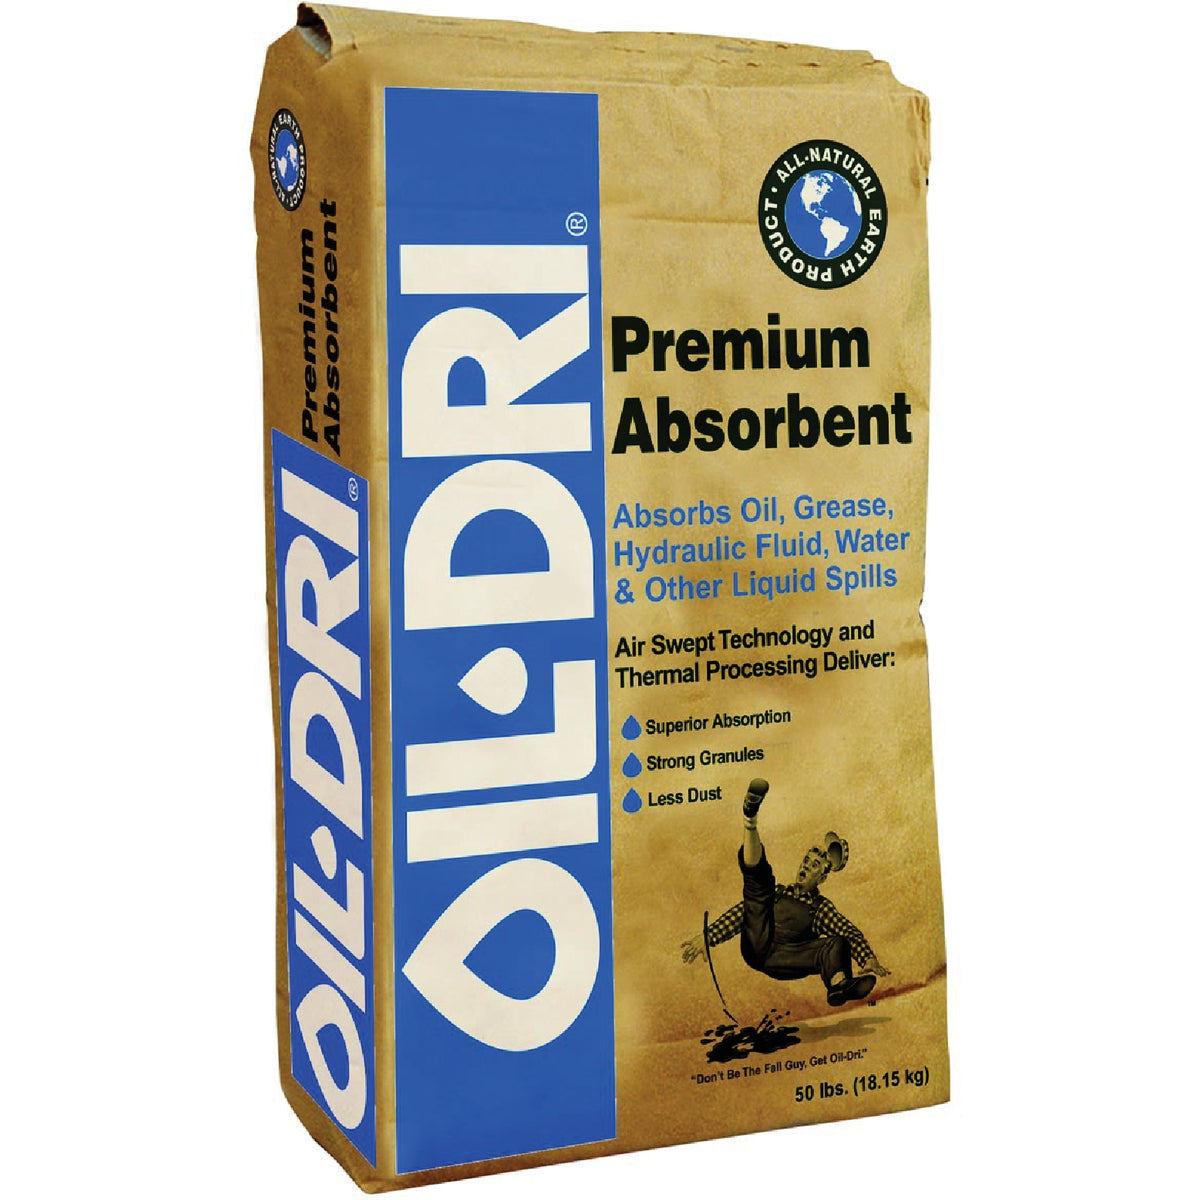 50LB OIL-DRY ABSORBENT - I01050-G50 by Oil Dri Corp